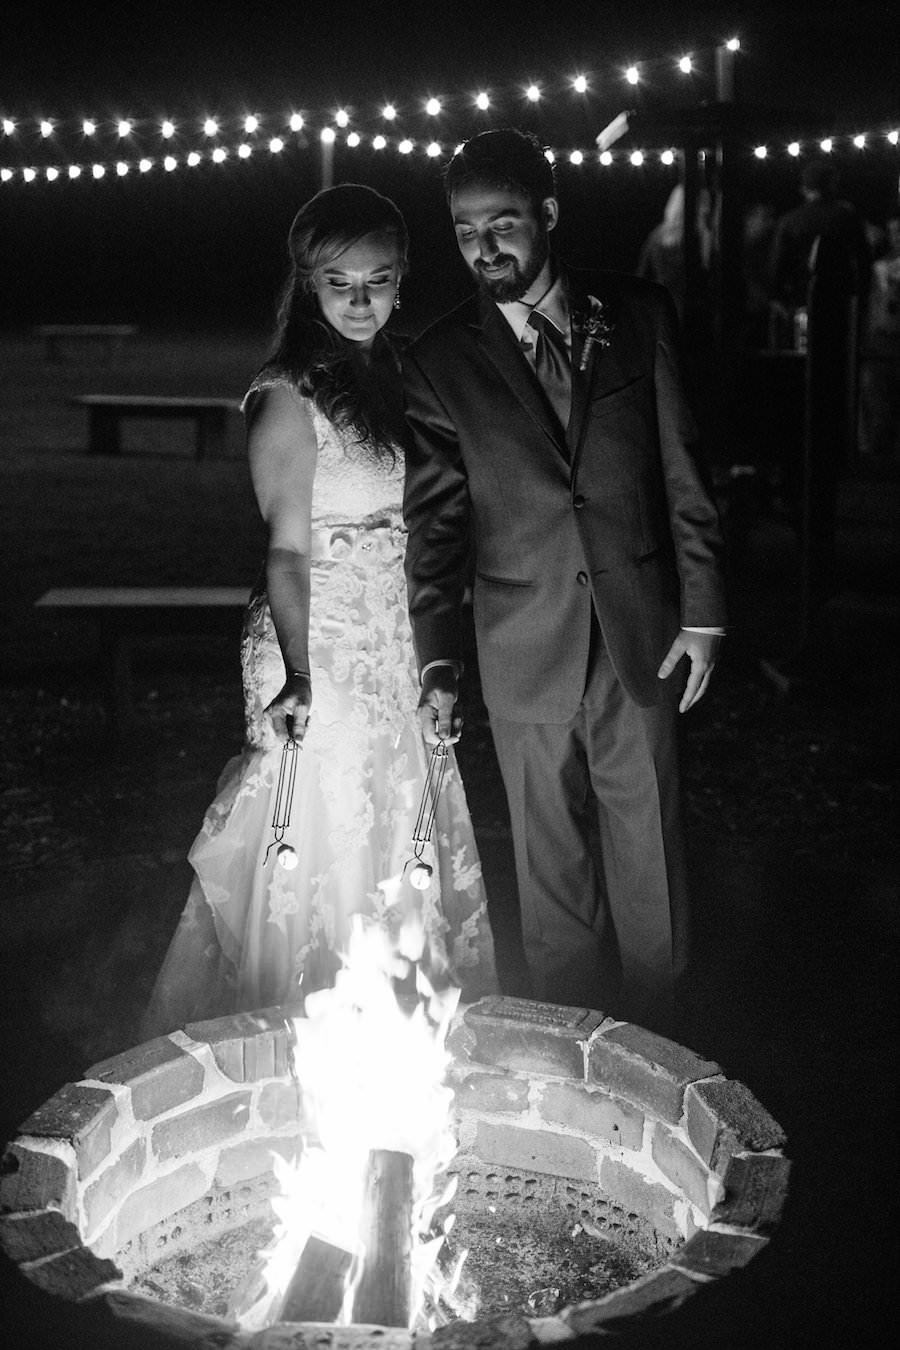 Bride and Groom Roasting S'Mores at Outdoor, Dover Wedding Reception